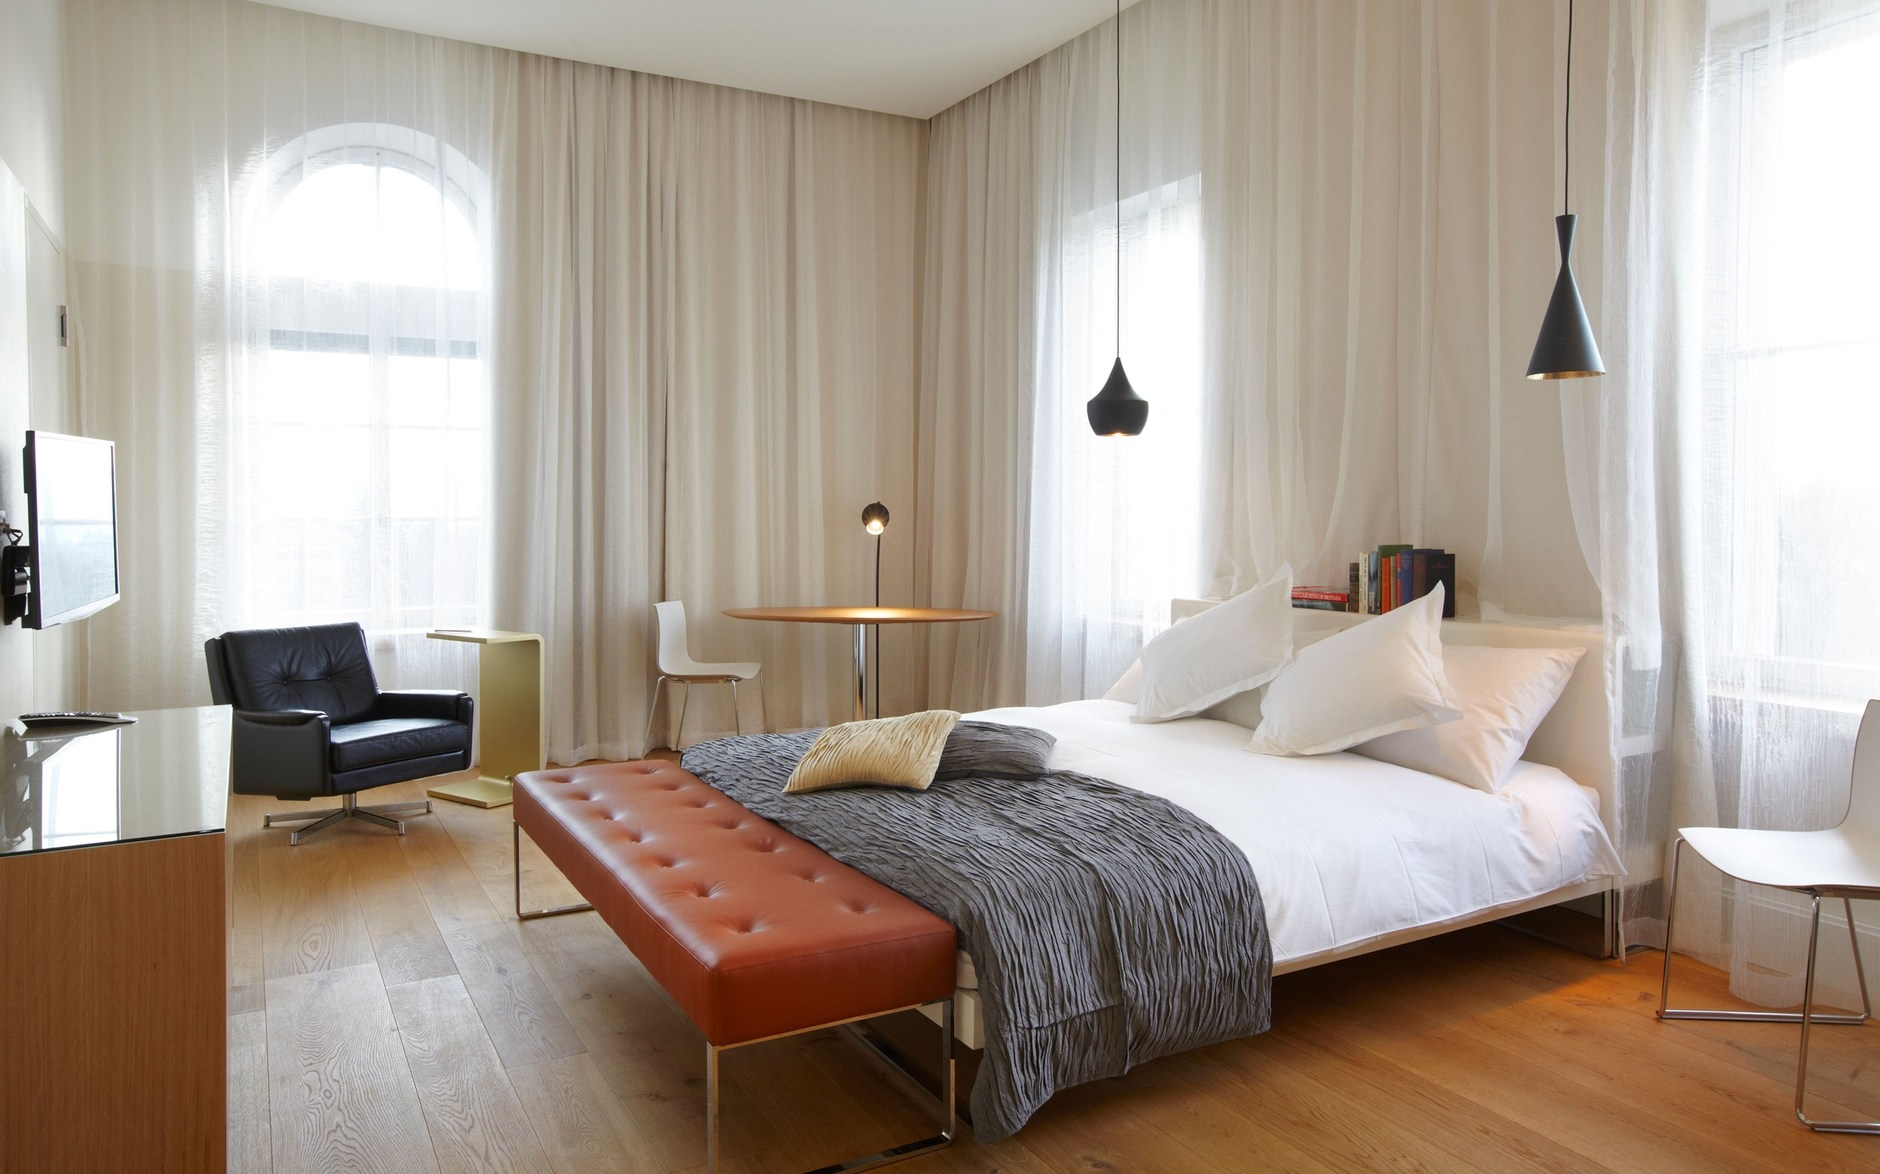 B2 Boutique Hotel By Althammer Hochuli Architekten